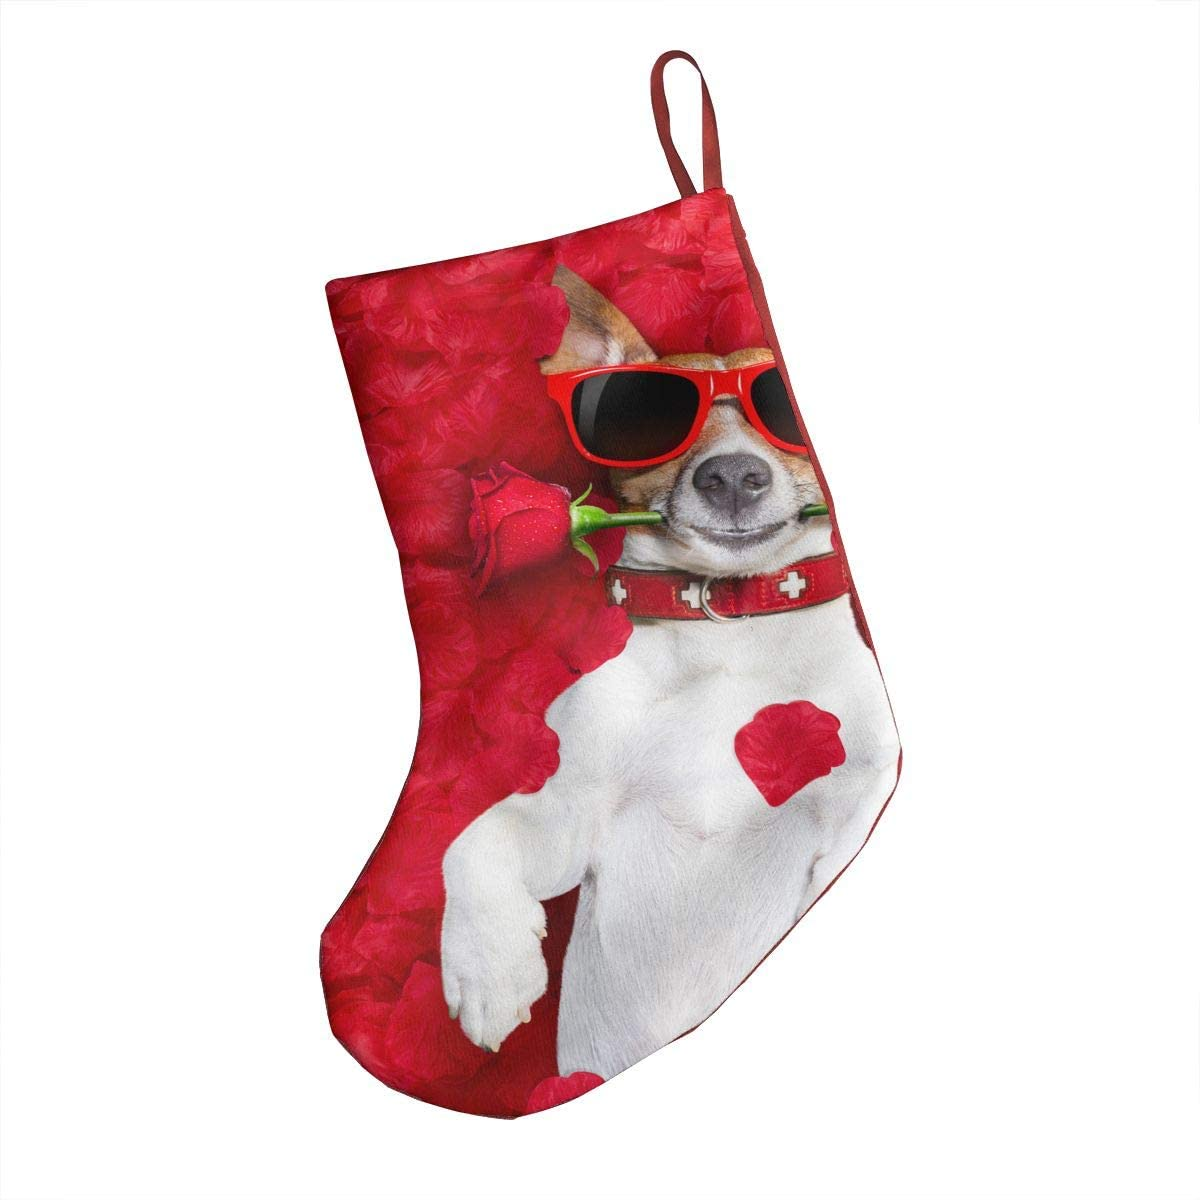 OHMYCOLOR Boston Terrier Dogs Roses Flower Christmas Stockings Socks Candy Gift Card Bags Xmas Stocking Holders, for Santa Claus Snowman Reindeer Tree Decorations Set Festival Party Ornament 18